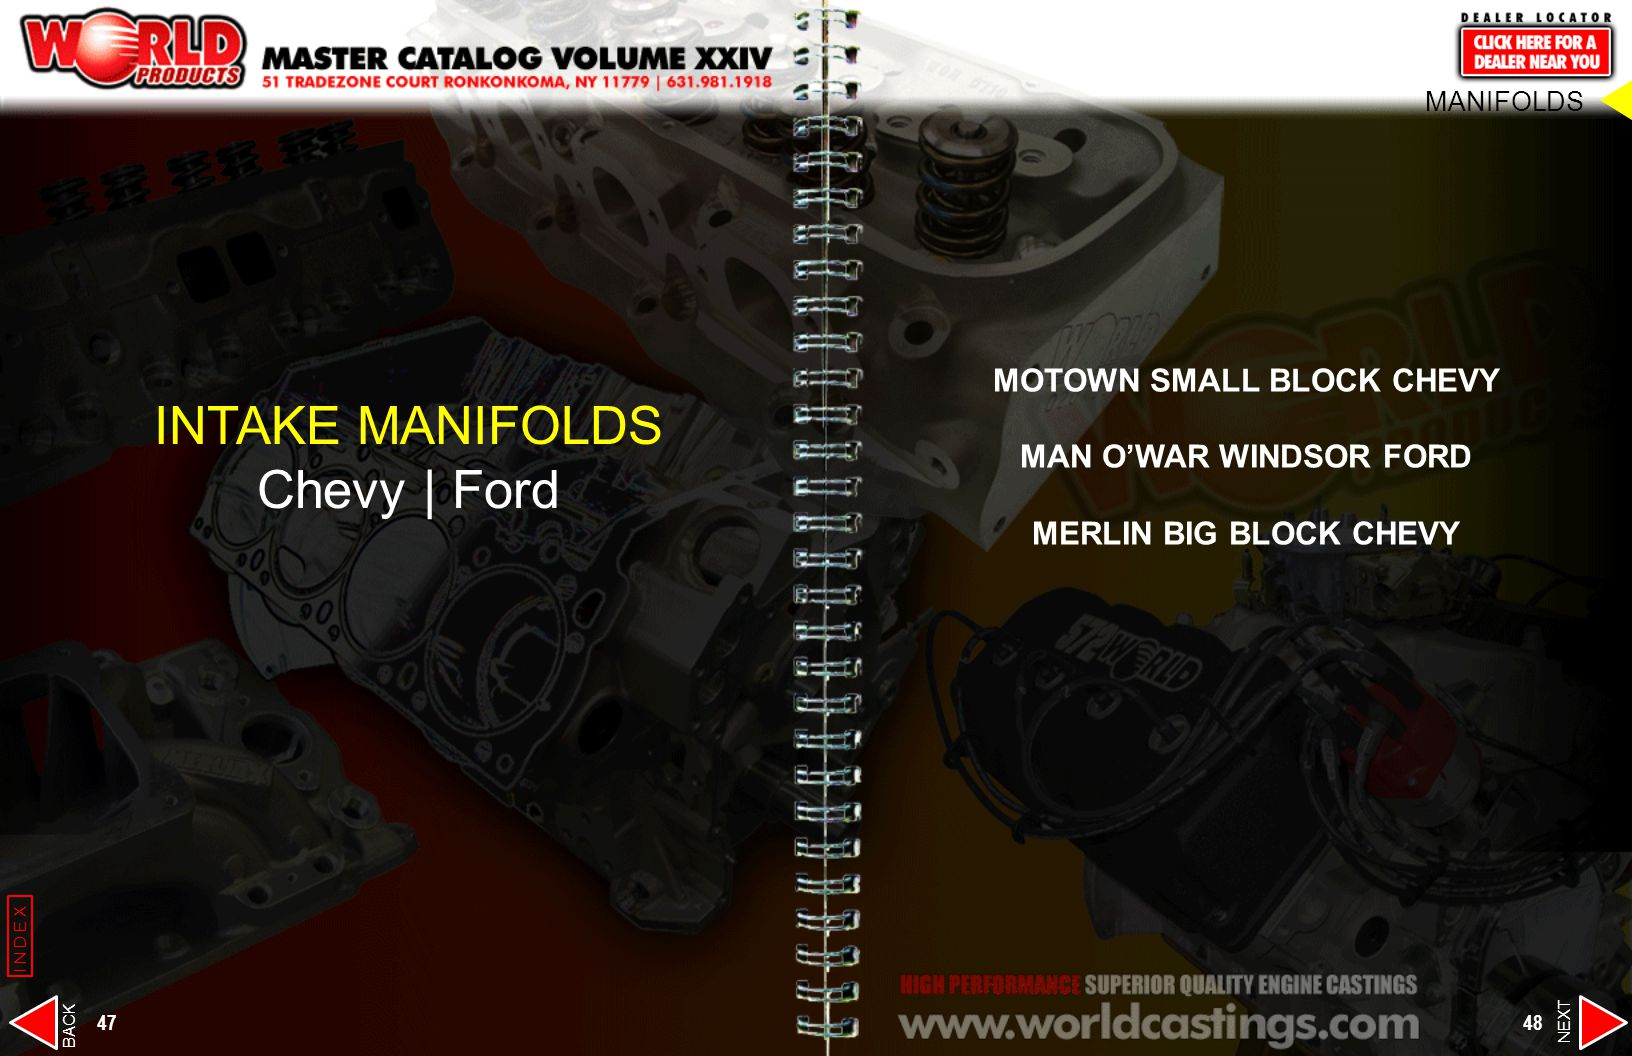 MOTOWN SMALL BLOCK CHEVY MAN O'WAR WINDSOR FORD MERLIN BIG BLOCK CHEVY